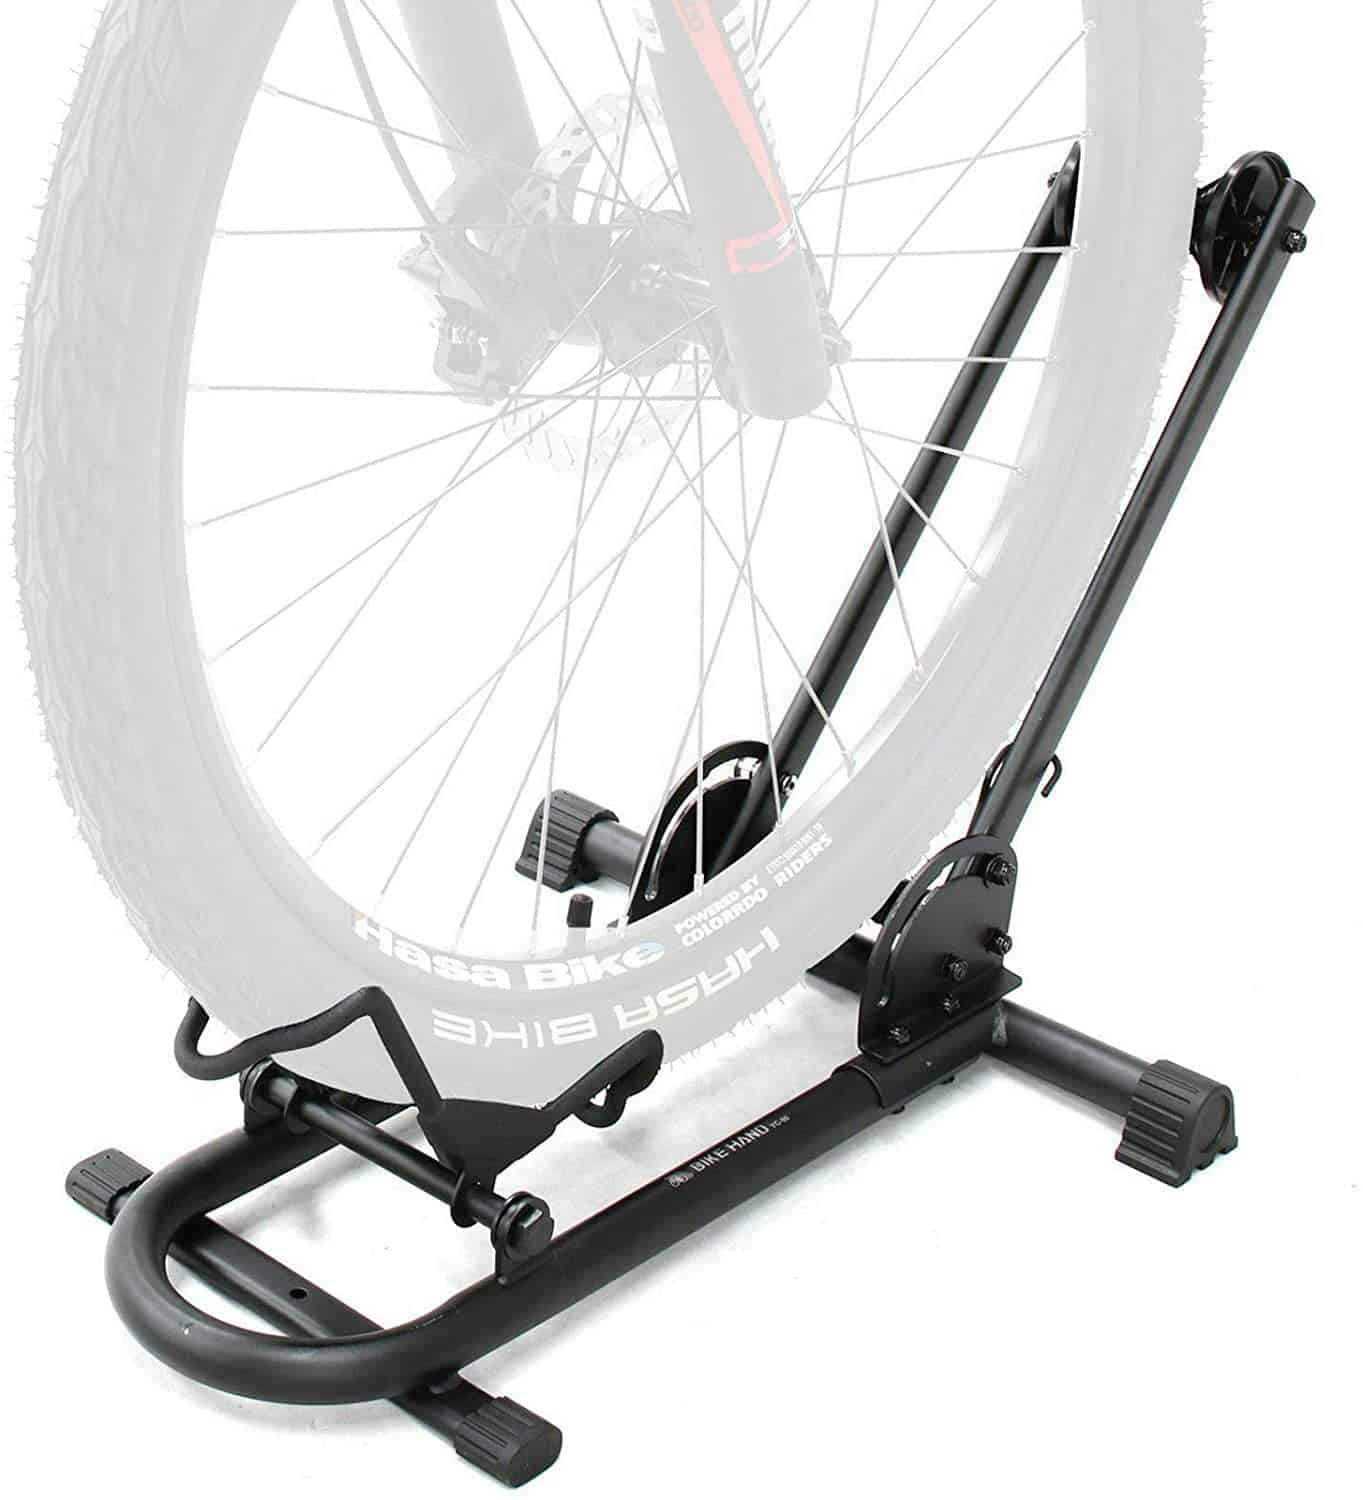 Best Bike Floor Stand for a Single Bike: Bikehand Bicycle Floor Parking Rack